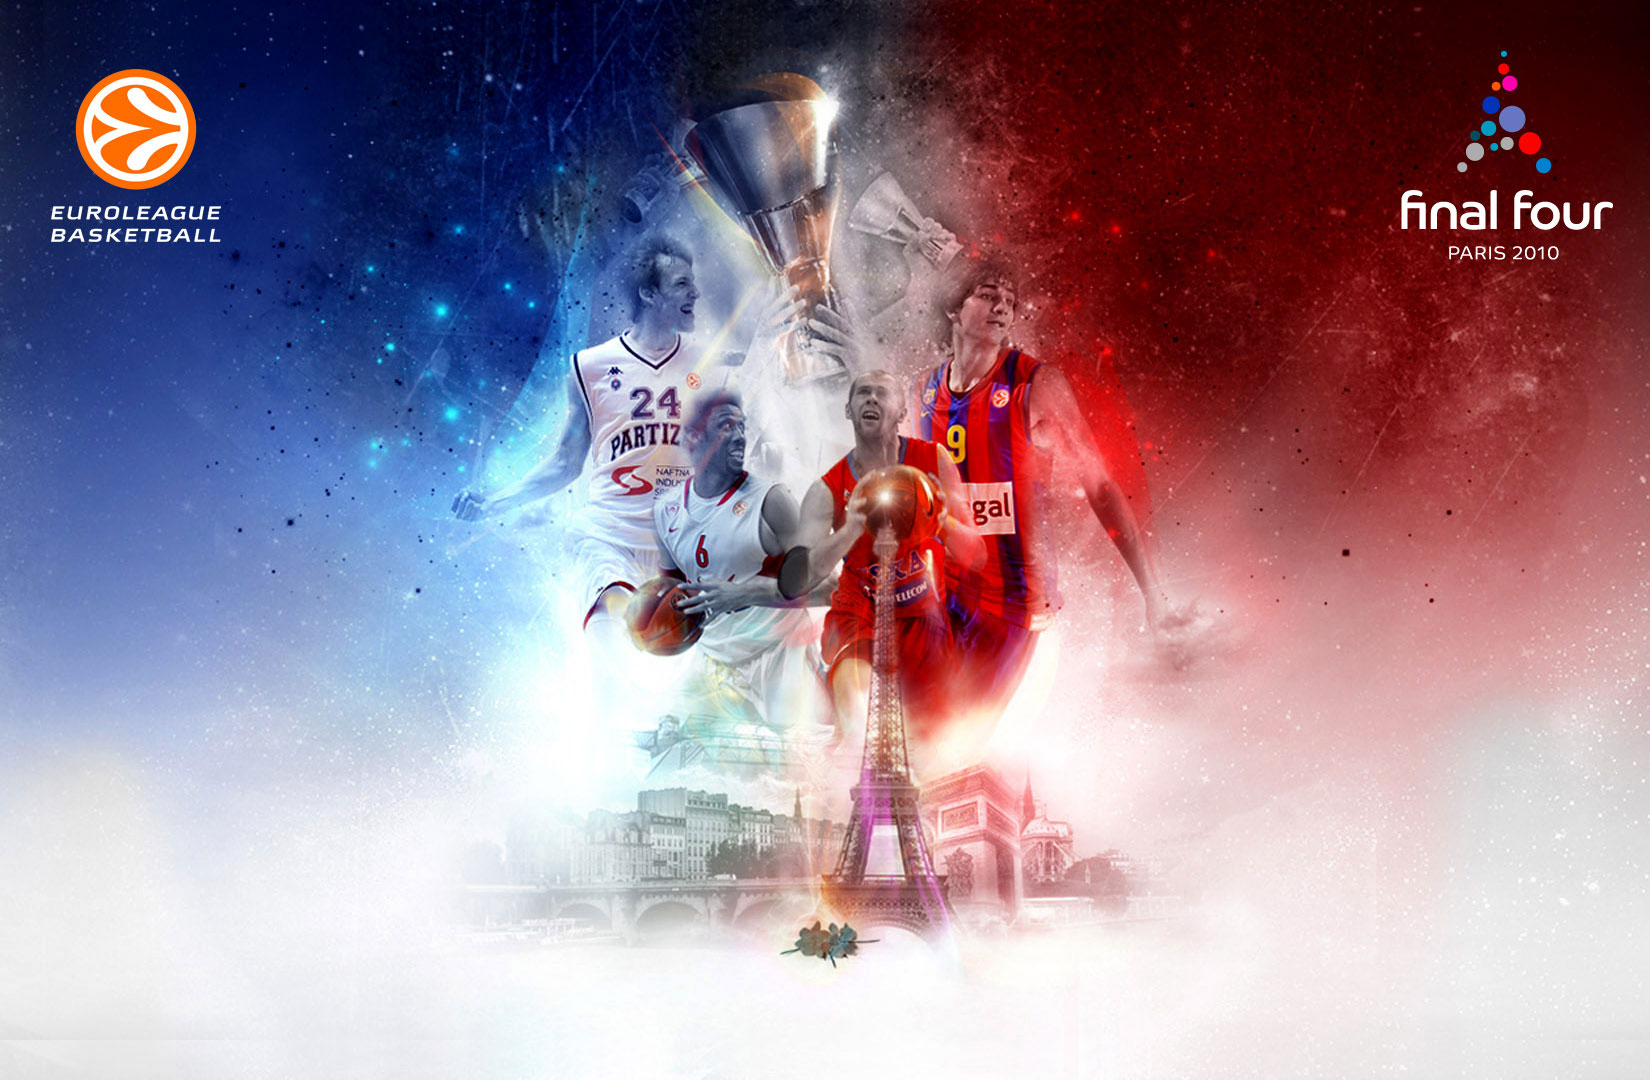 Euroleague 2010 Final Four Widescreen Wallpaper